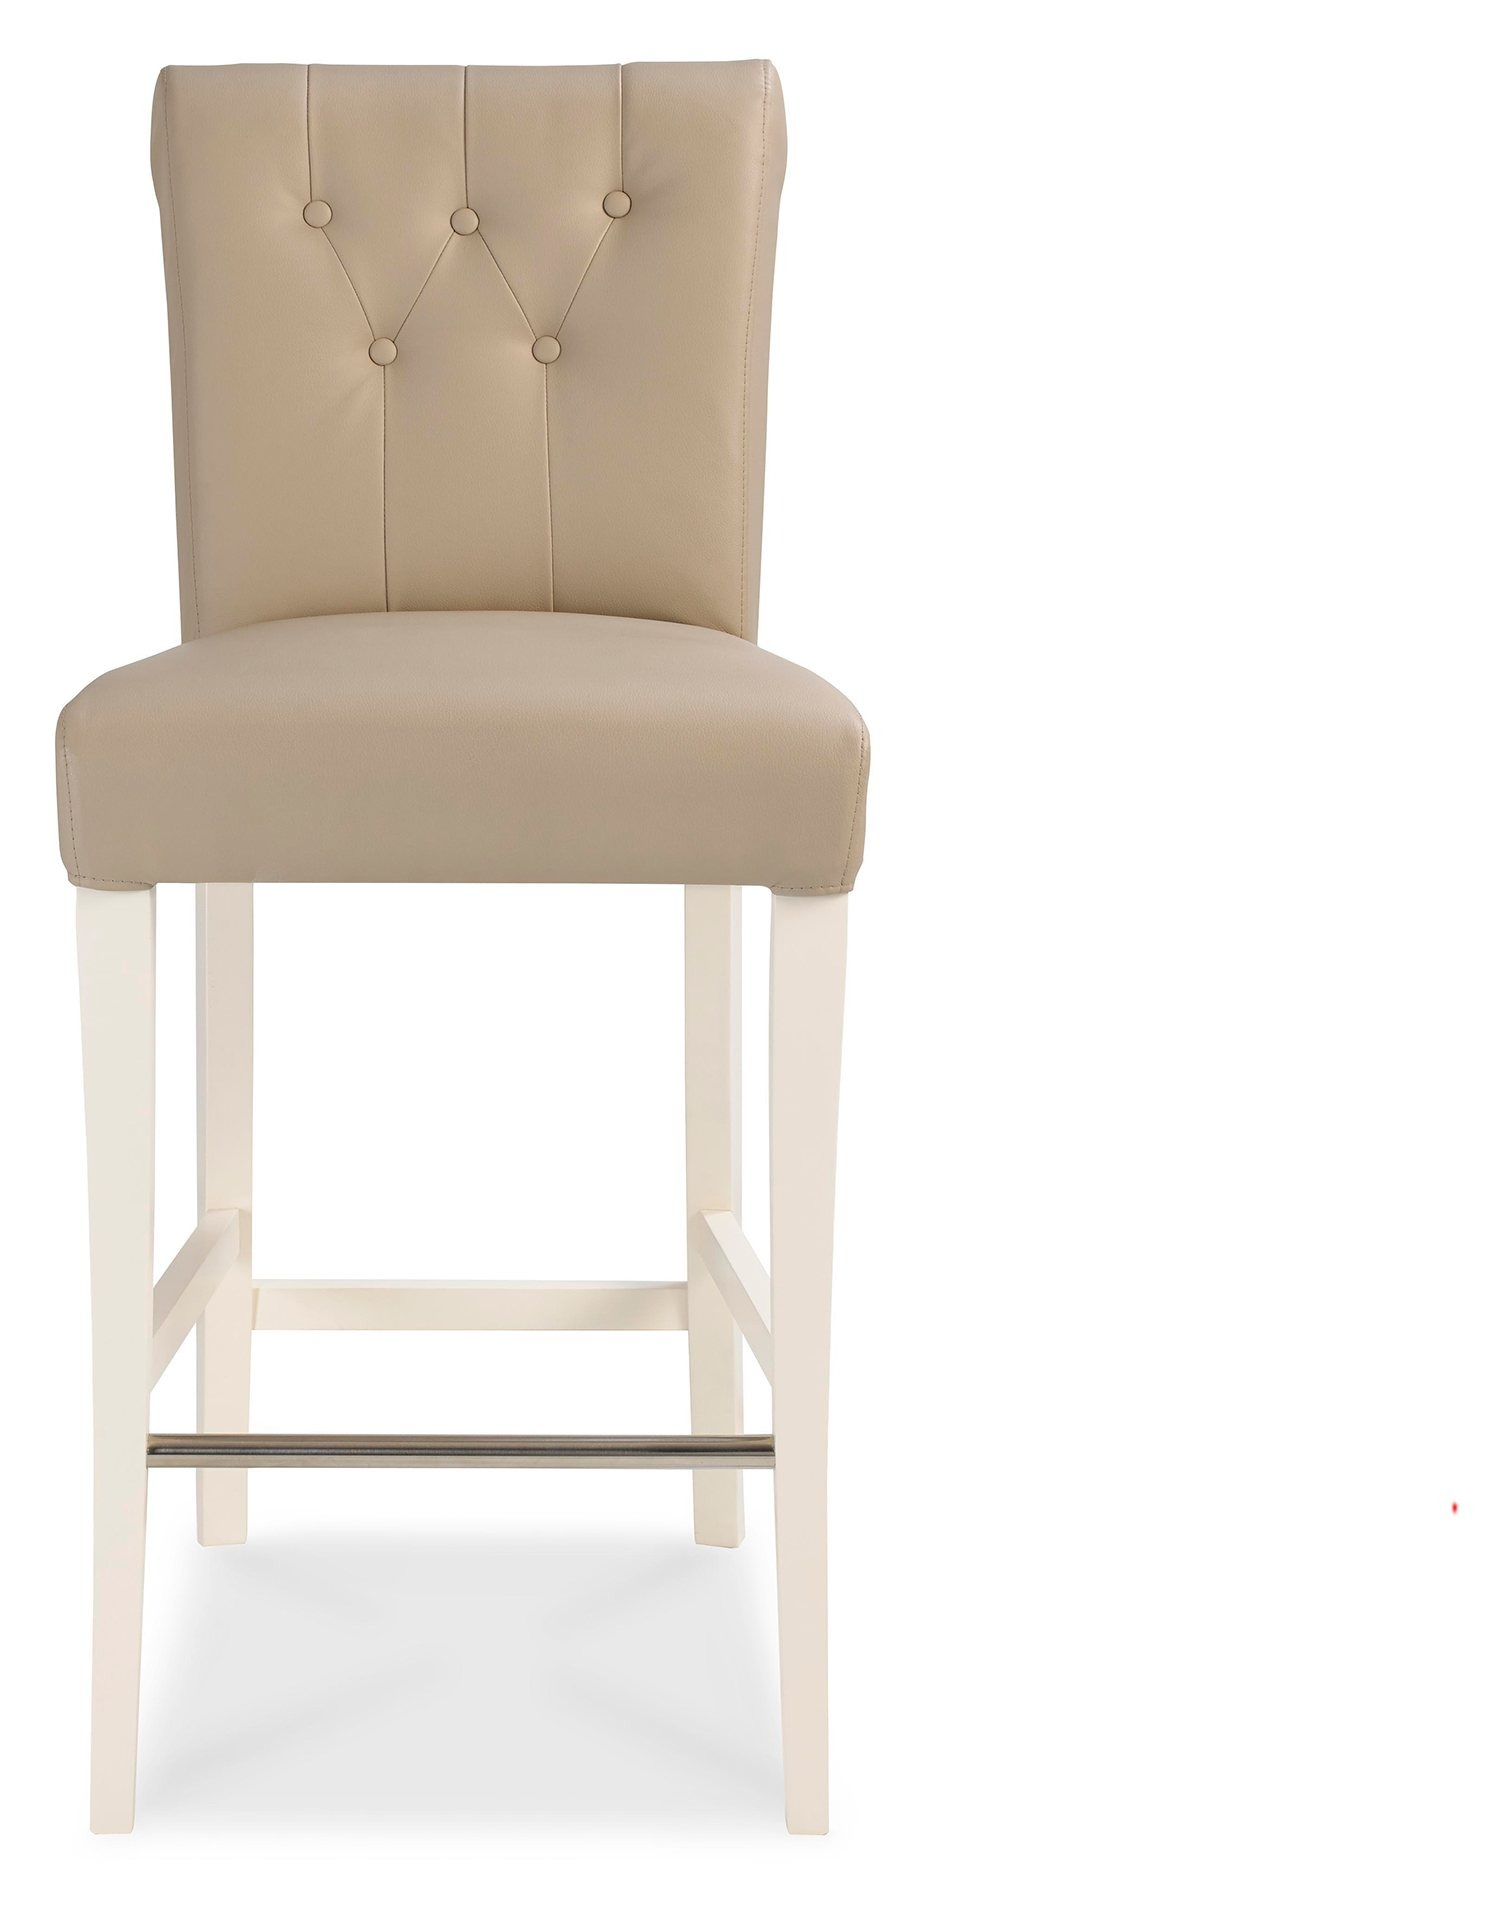 KYRA BAR STOOL - FRONT DETAIL